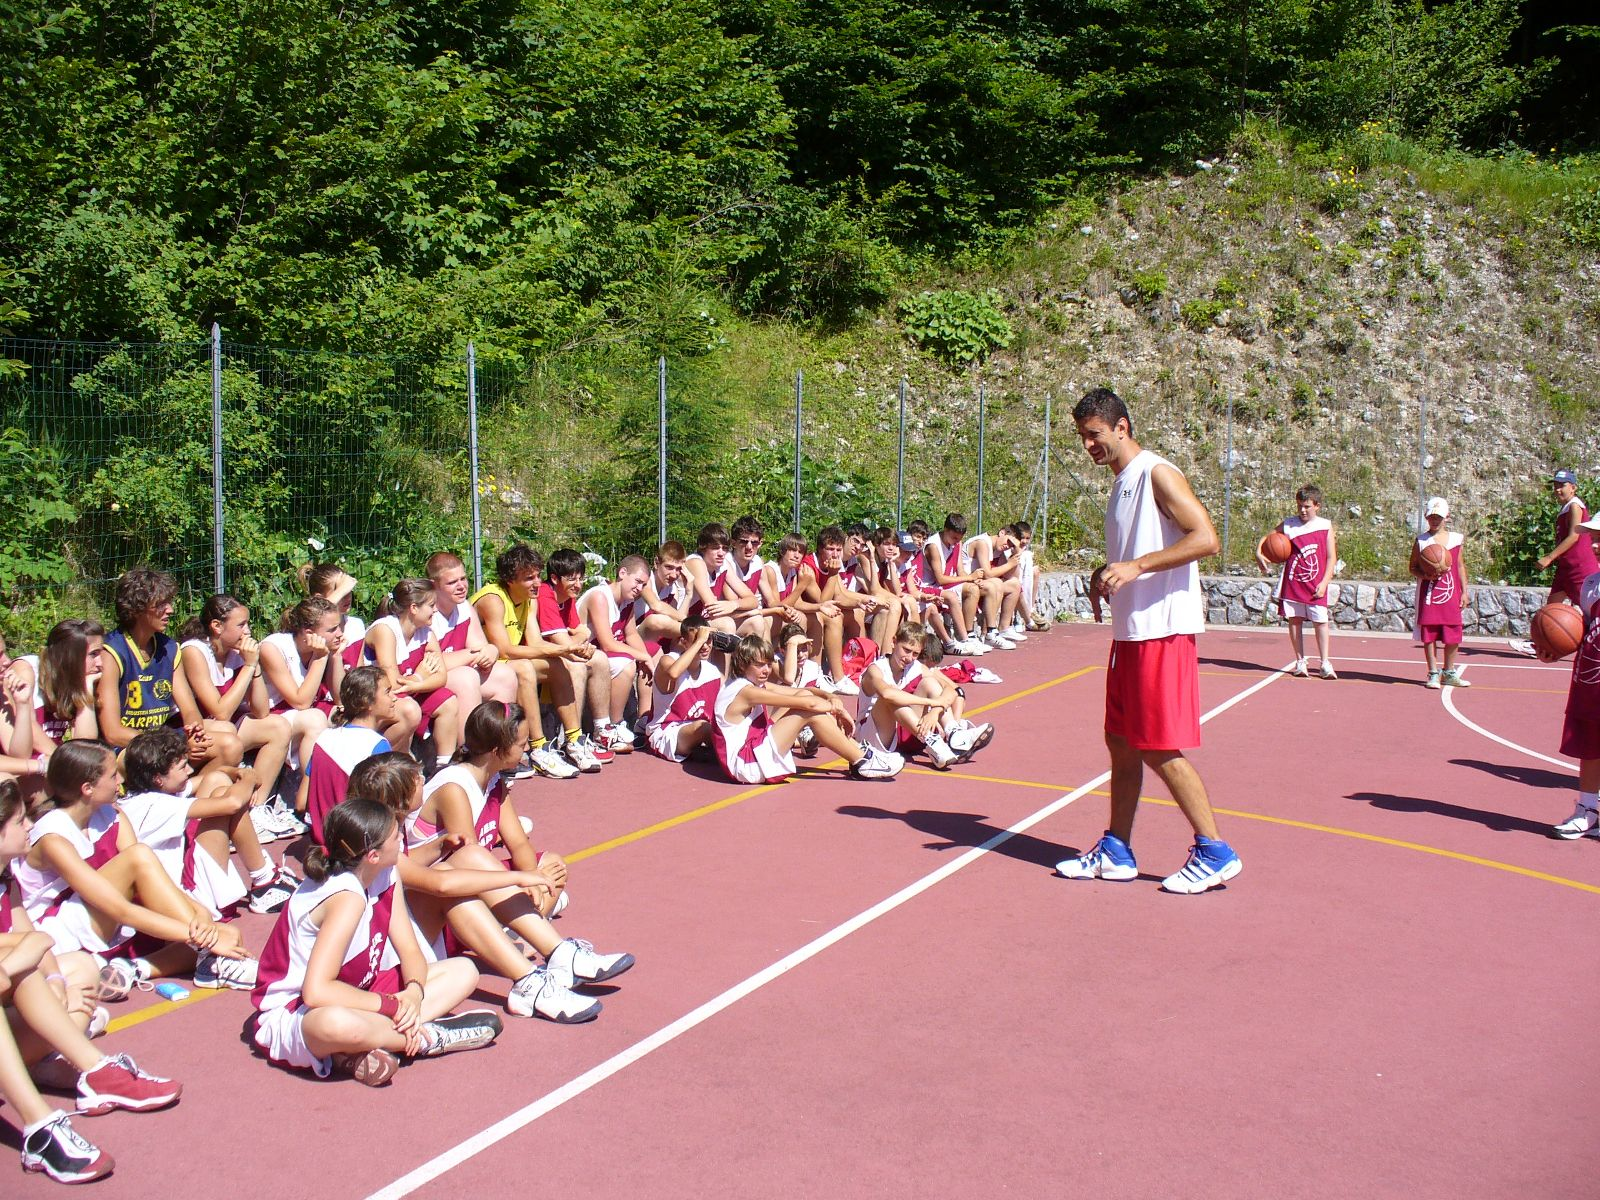 Terzo Basket Summer Camp San Martino di Venezze 2011